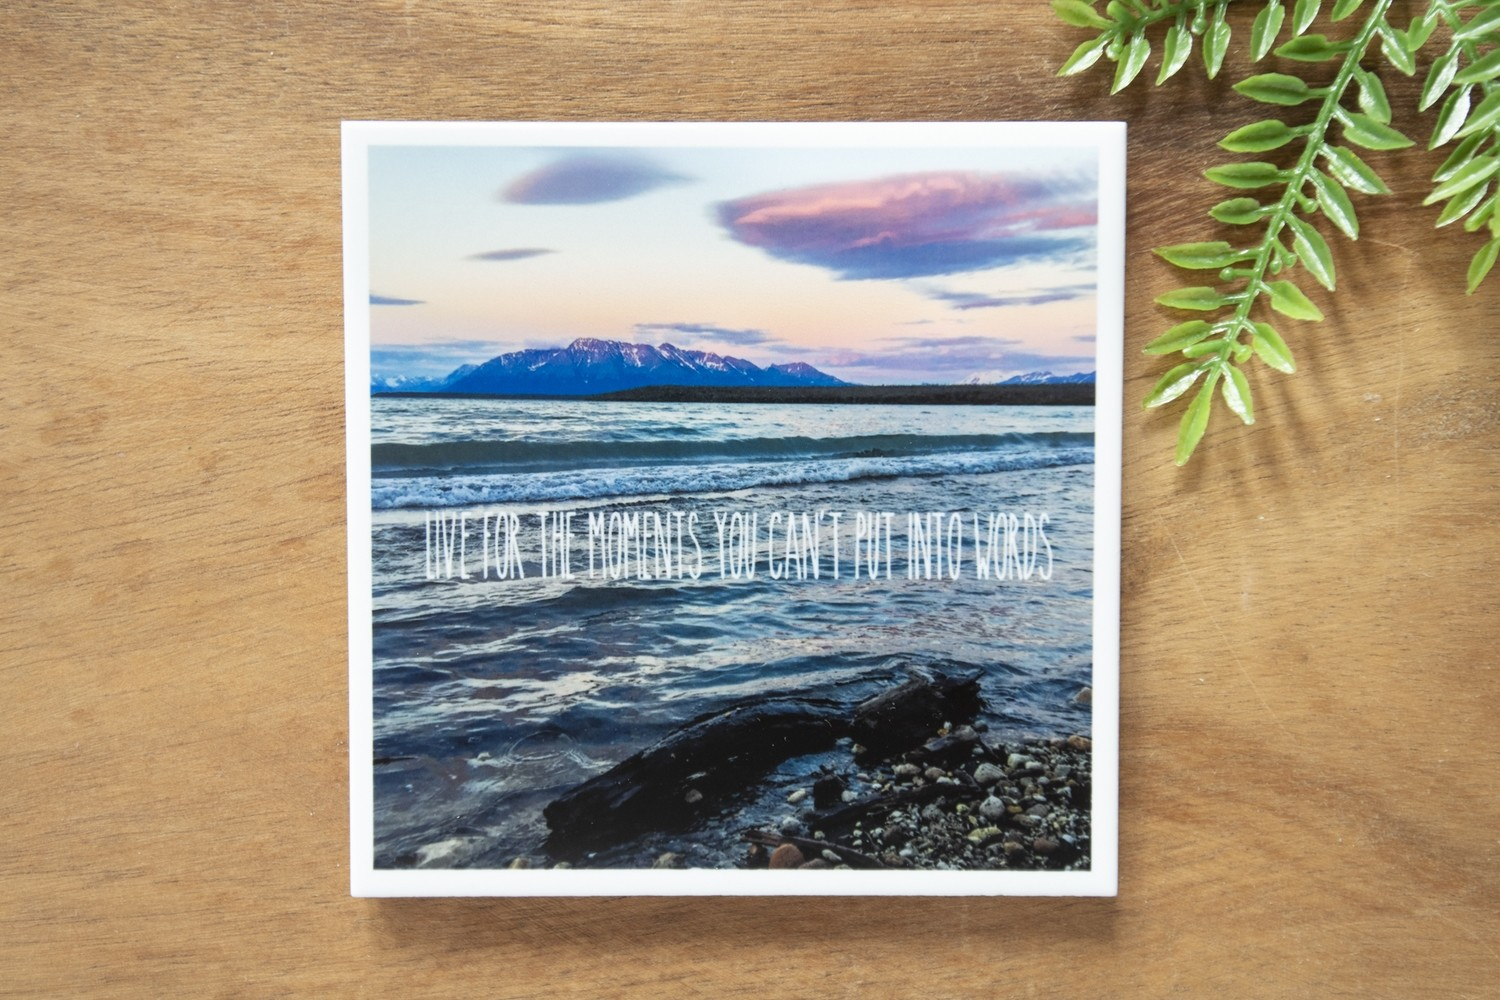 Live For The Moments You Can't Put Into Words-Nature Photo Coaster